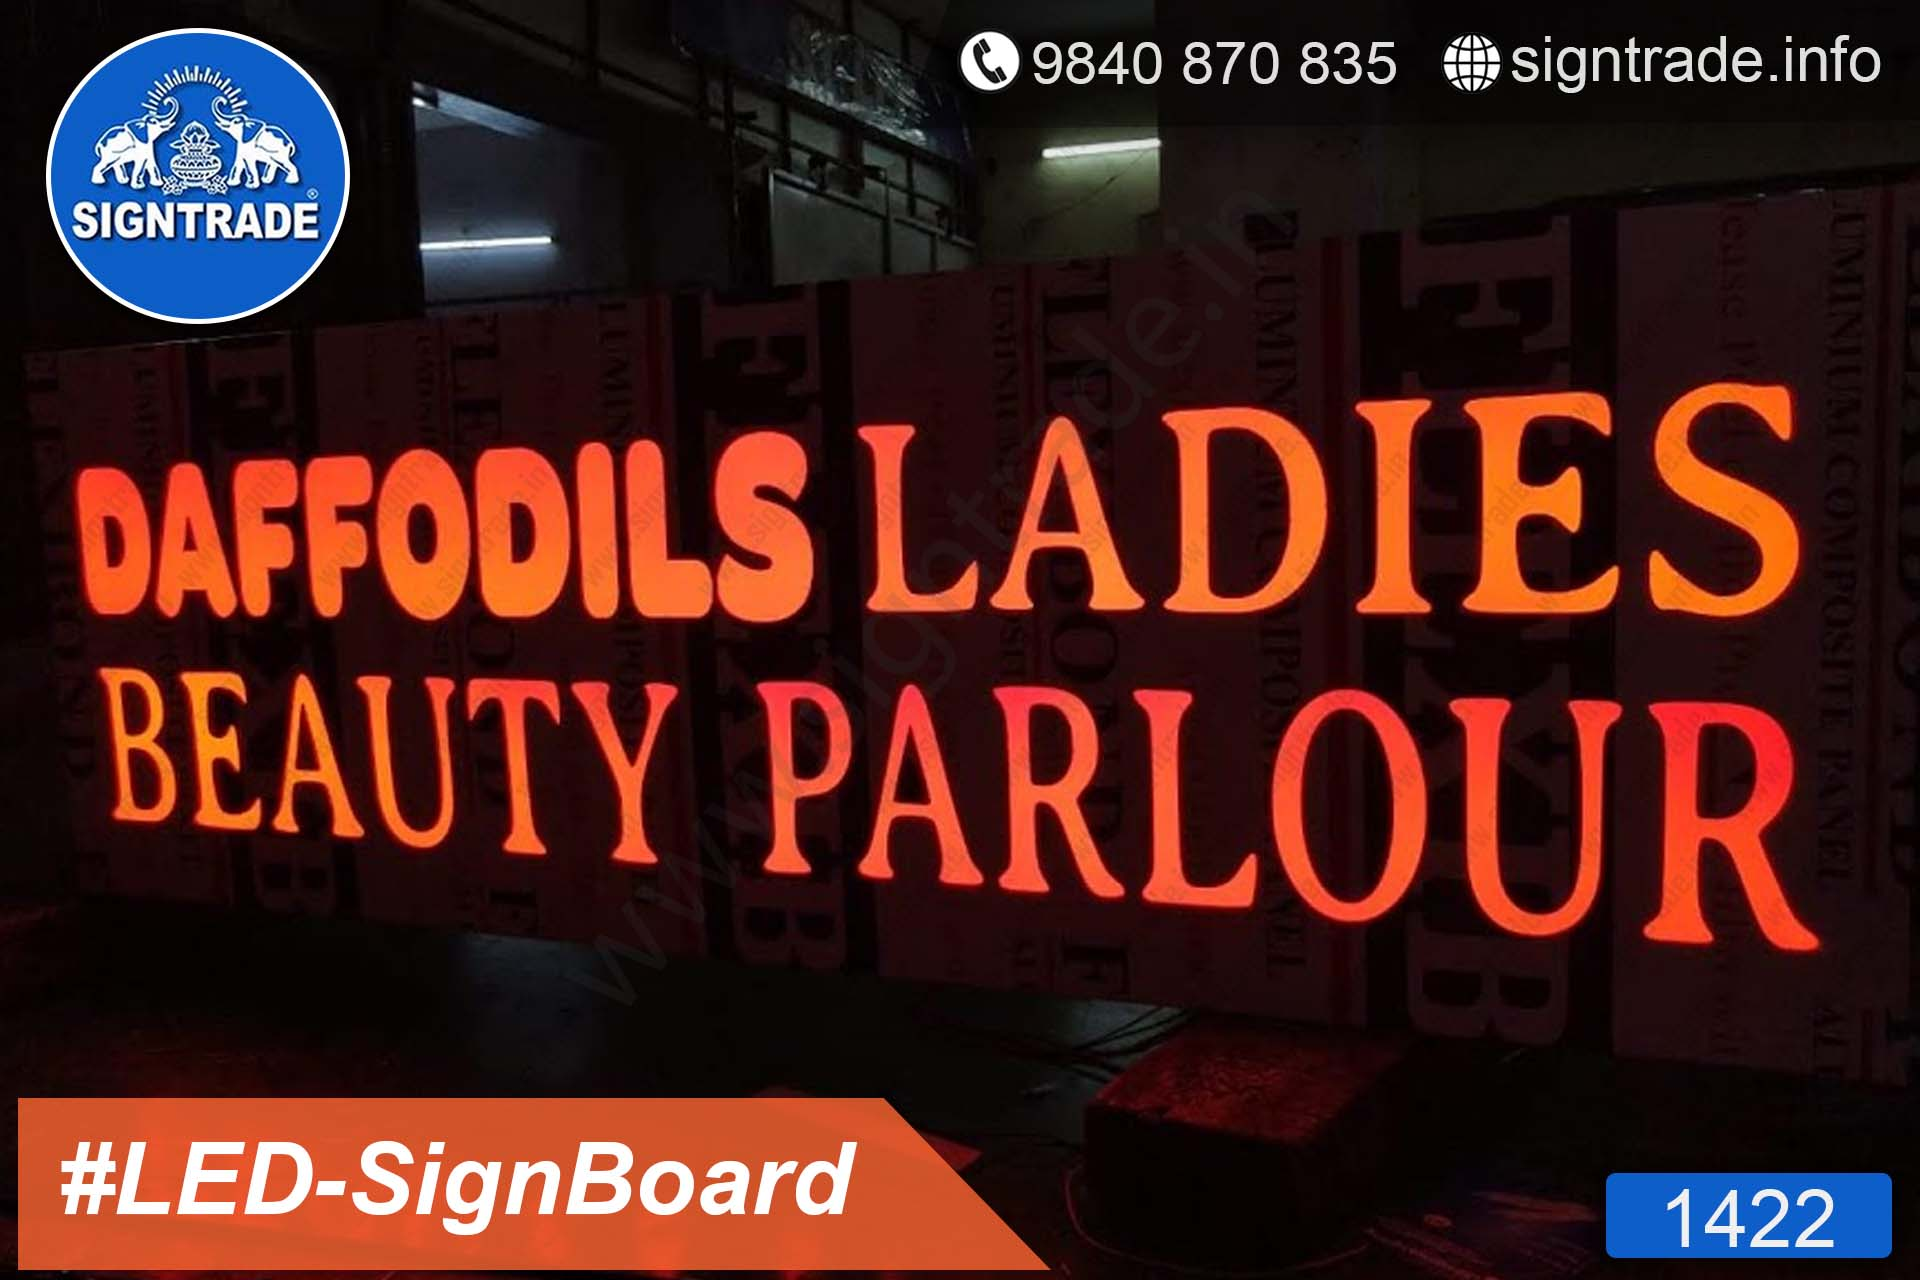 DAFFODILES LADIES BEAUTY PARLOUR - 1422, LED Sign Board, Sign Board, Acrylic Sign Board, Glow Sign Board, Custom Sign Board